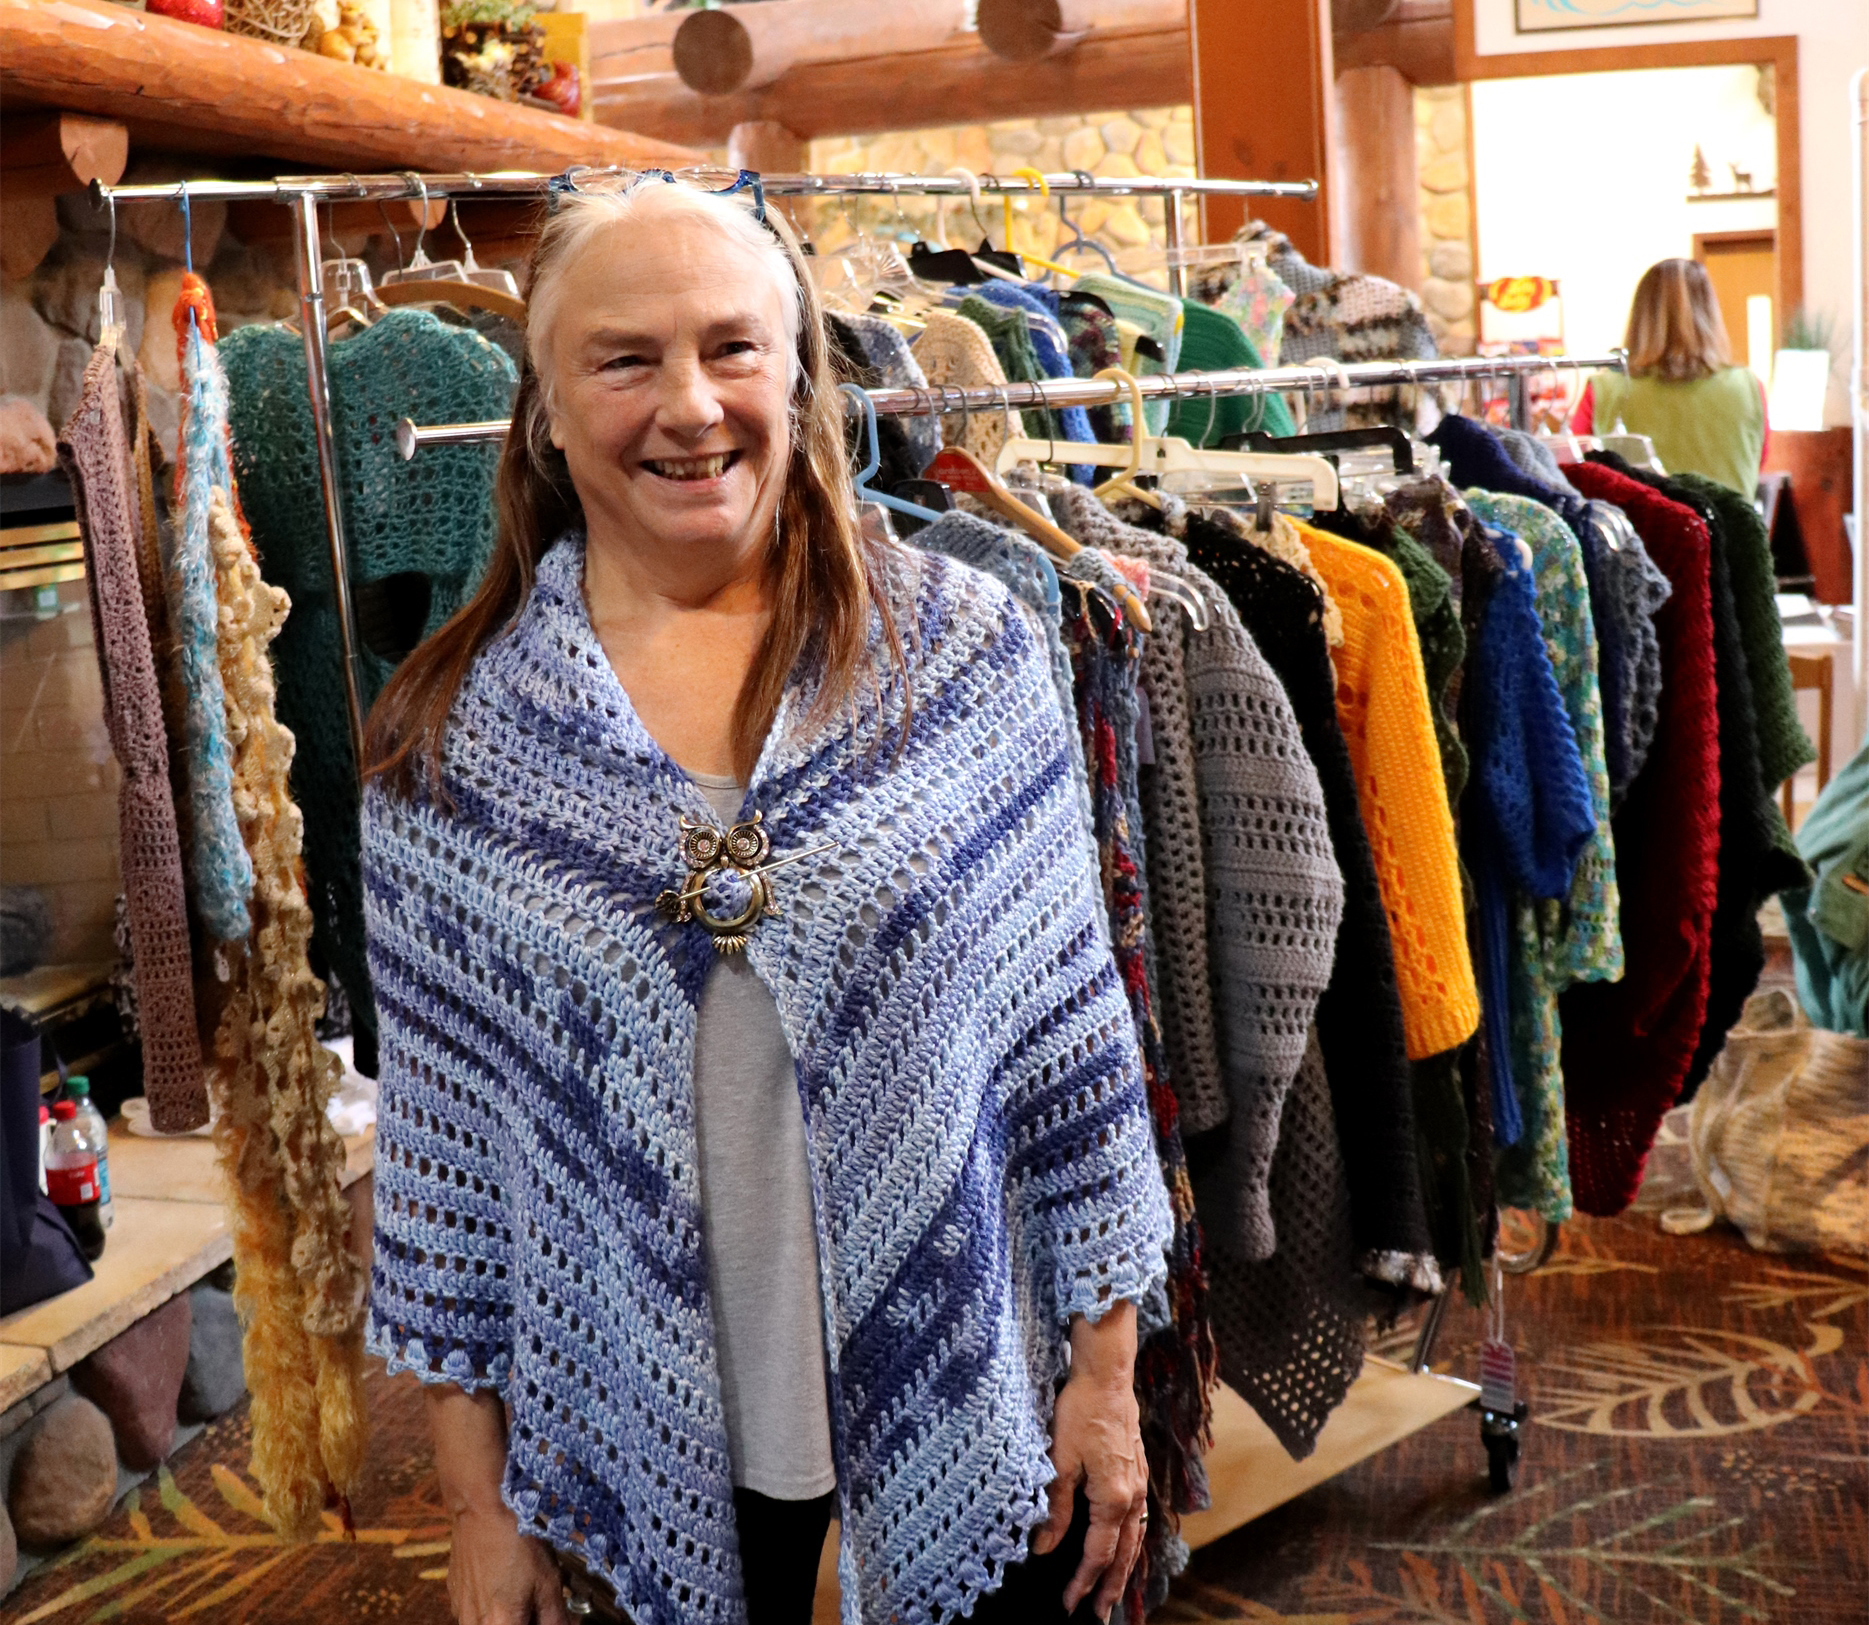 Charlotte Anderson of Charlotte's Webs shows off her handmade sweaters. Kim Johnson photo